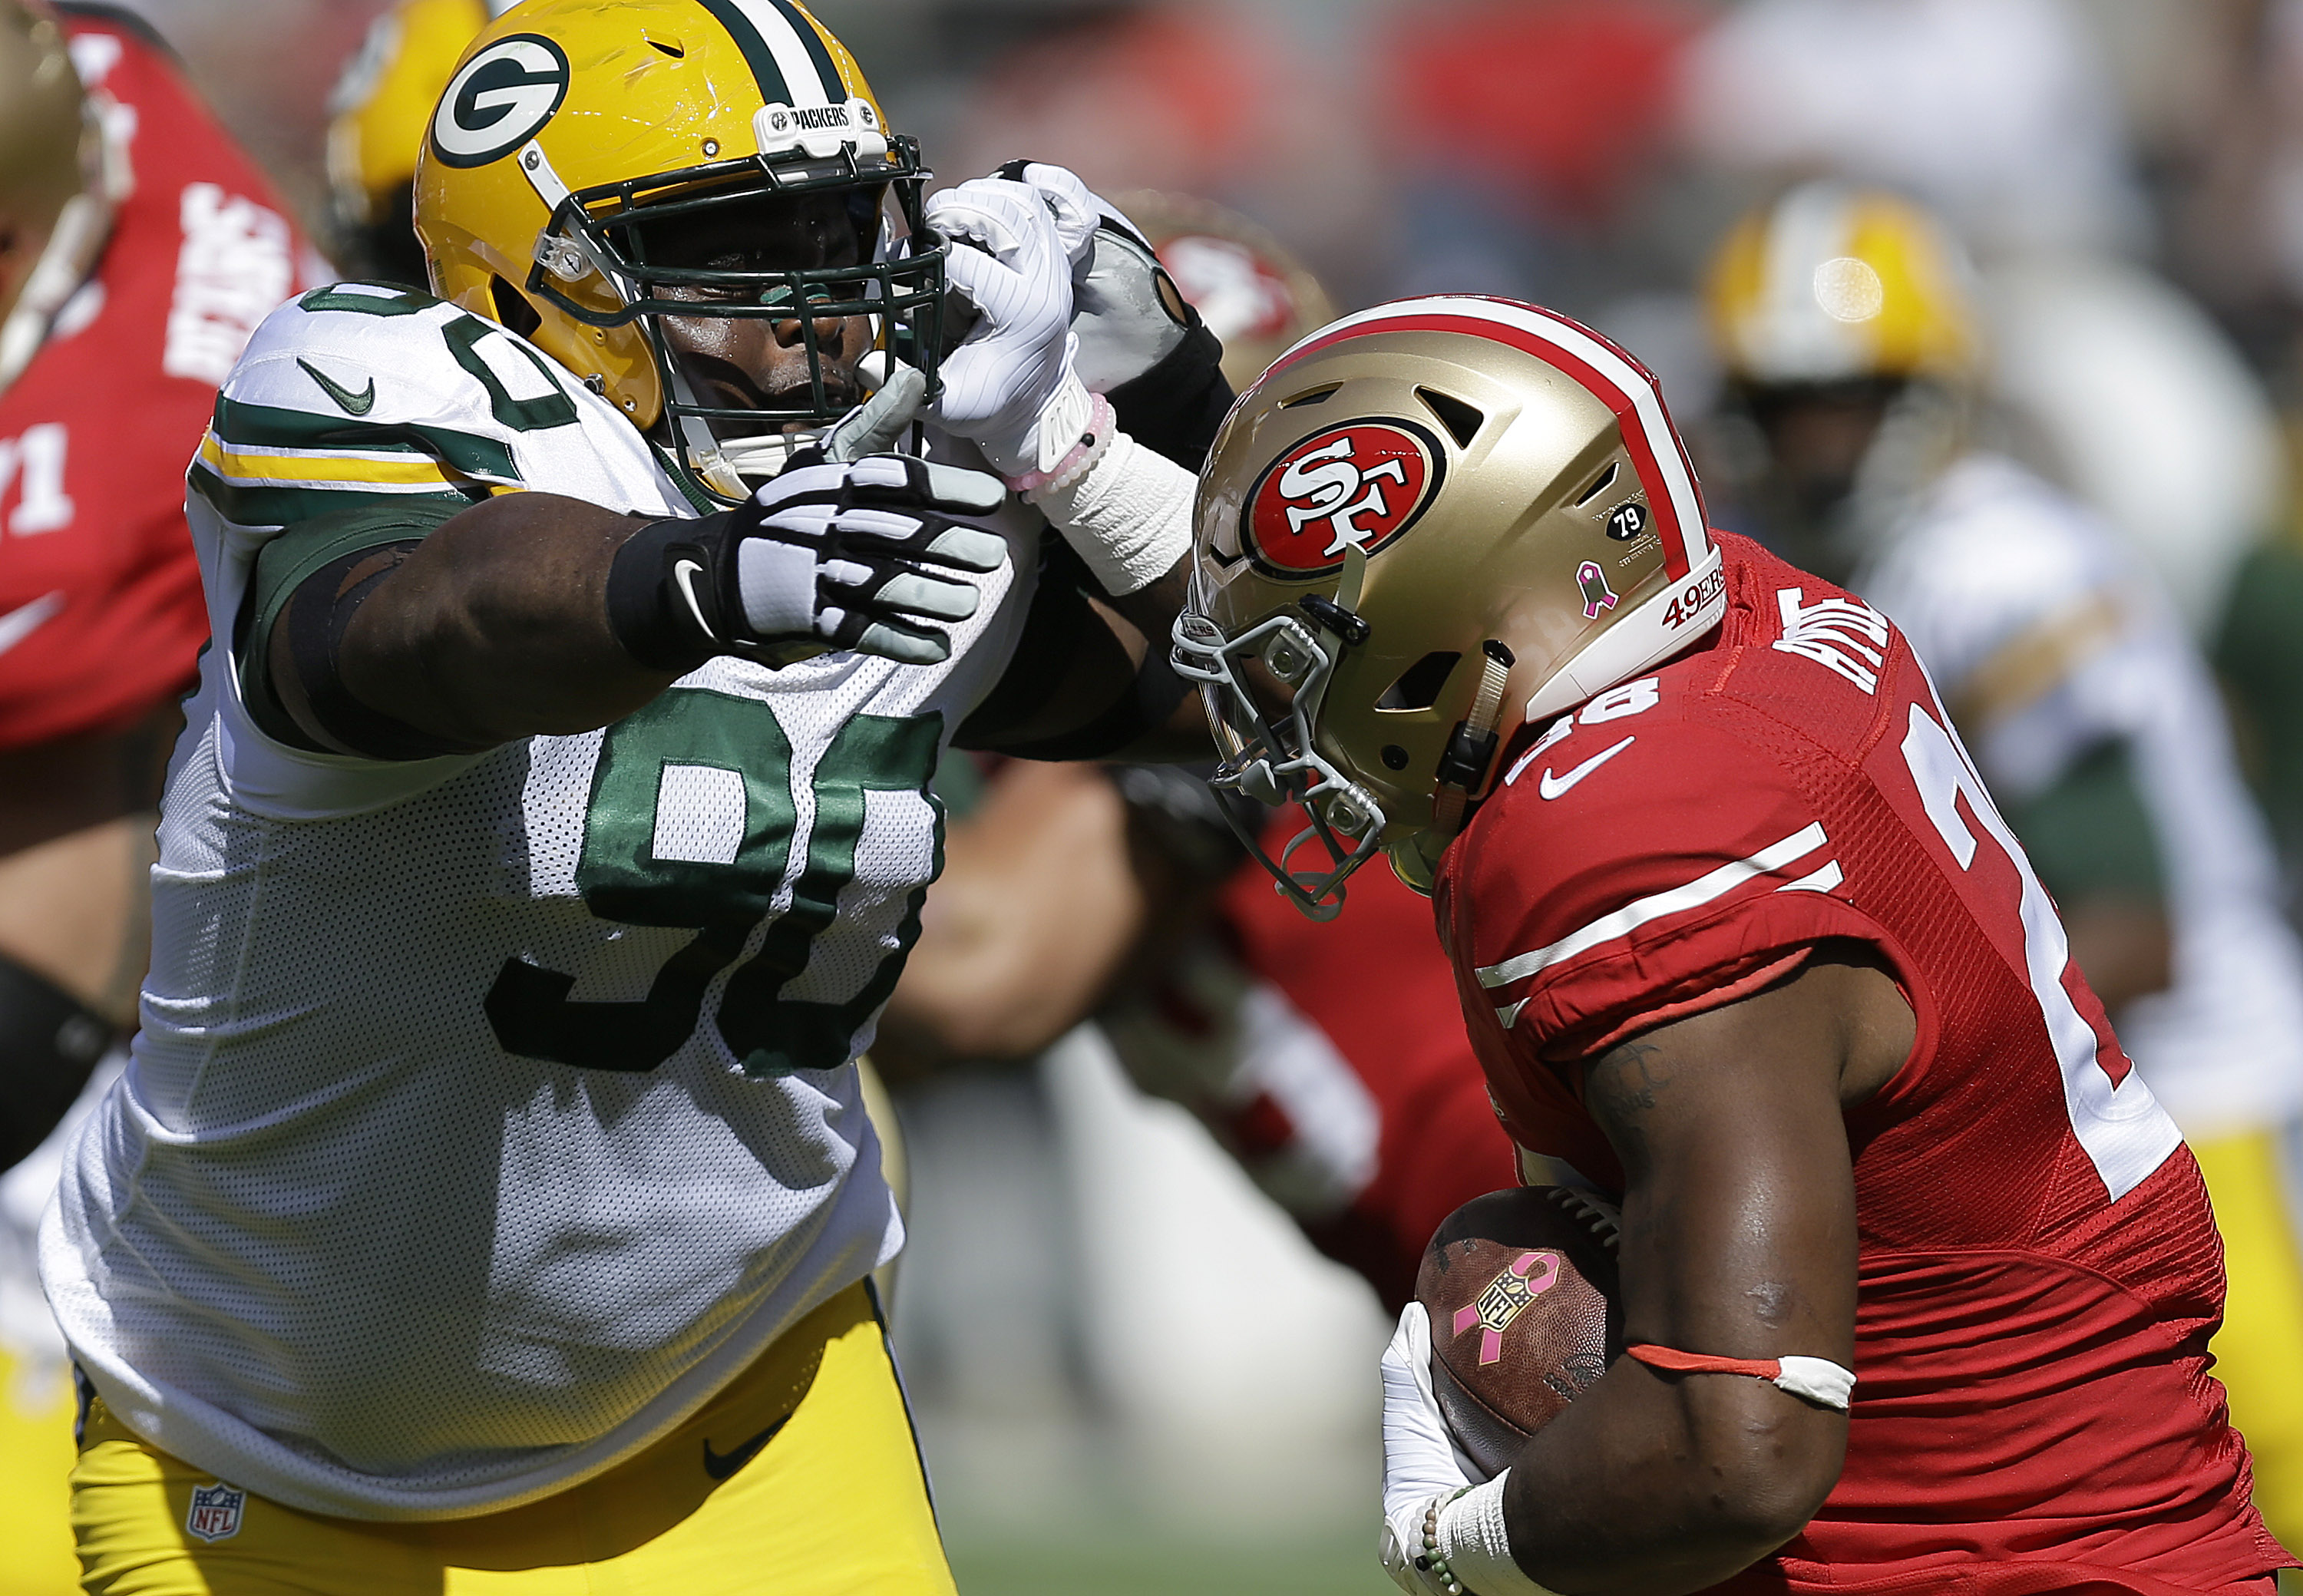 FILE - In this Oct. 4, 2015, file photo, Green Bay Packers nose tackle B.J. Raji (90) reaches for San Francisco 49ers running back Carlos Hyde during the first half of an NFL football game in Santa Clara, Calif. Problems on offense have overshadowed a sol